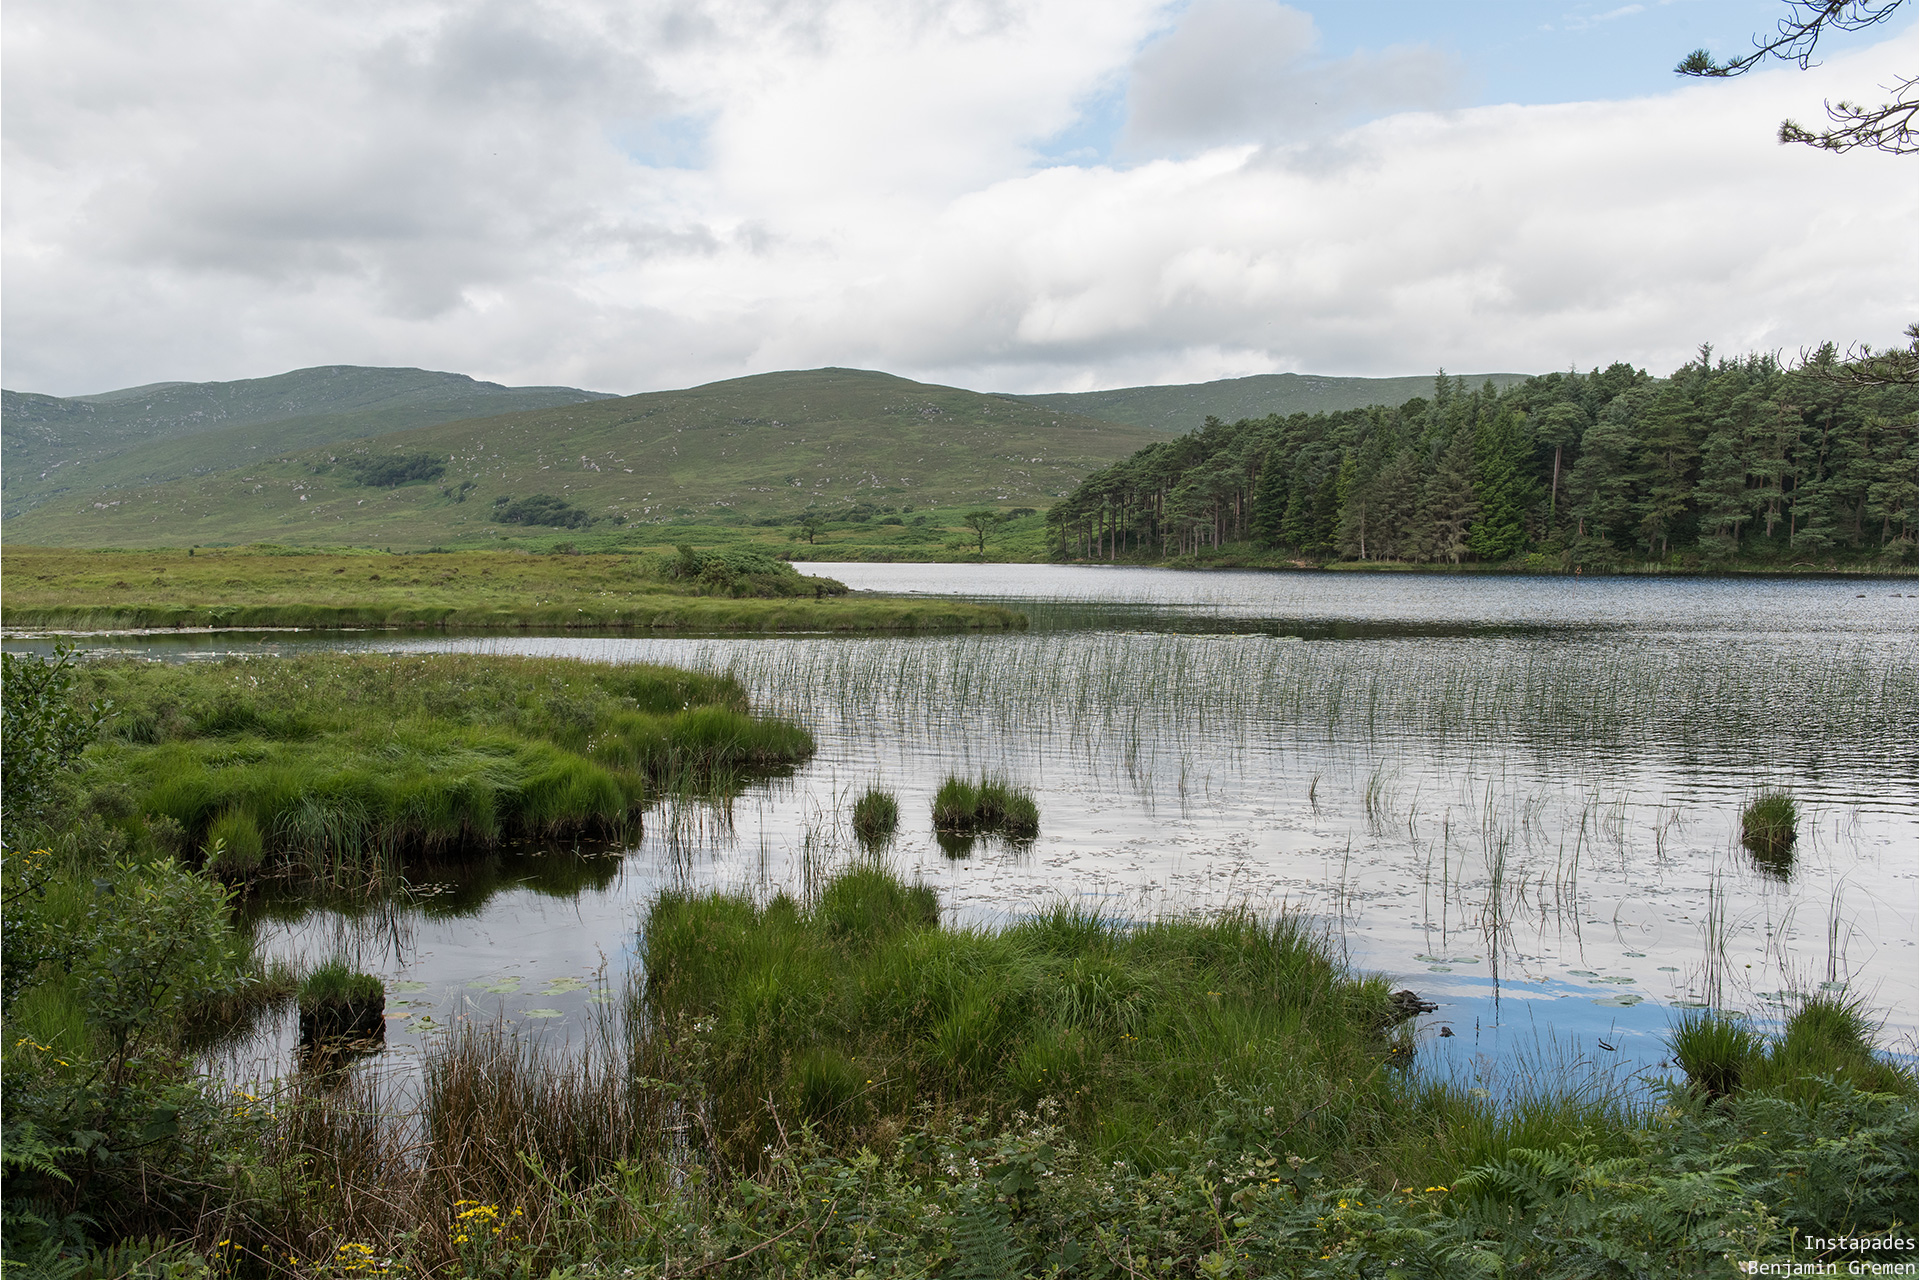 j6-gleenveagh-national-park-7723